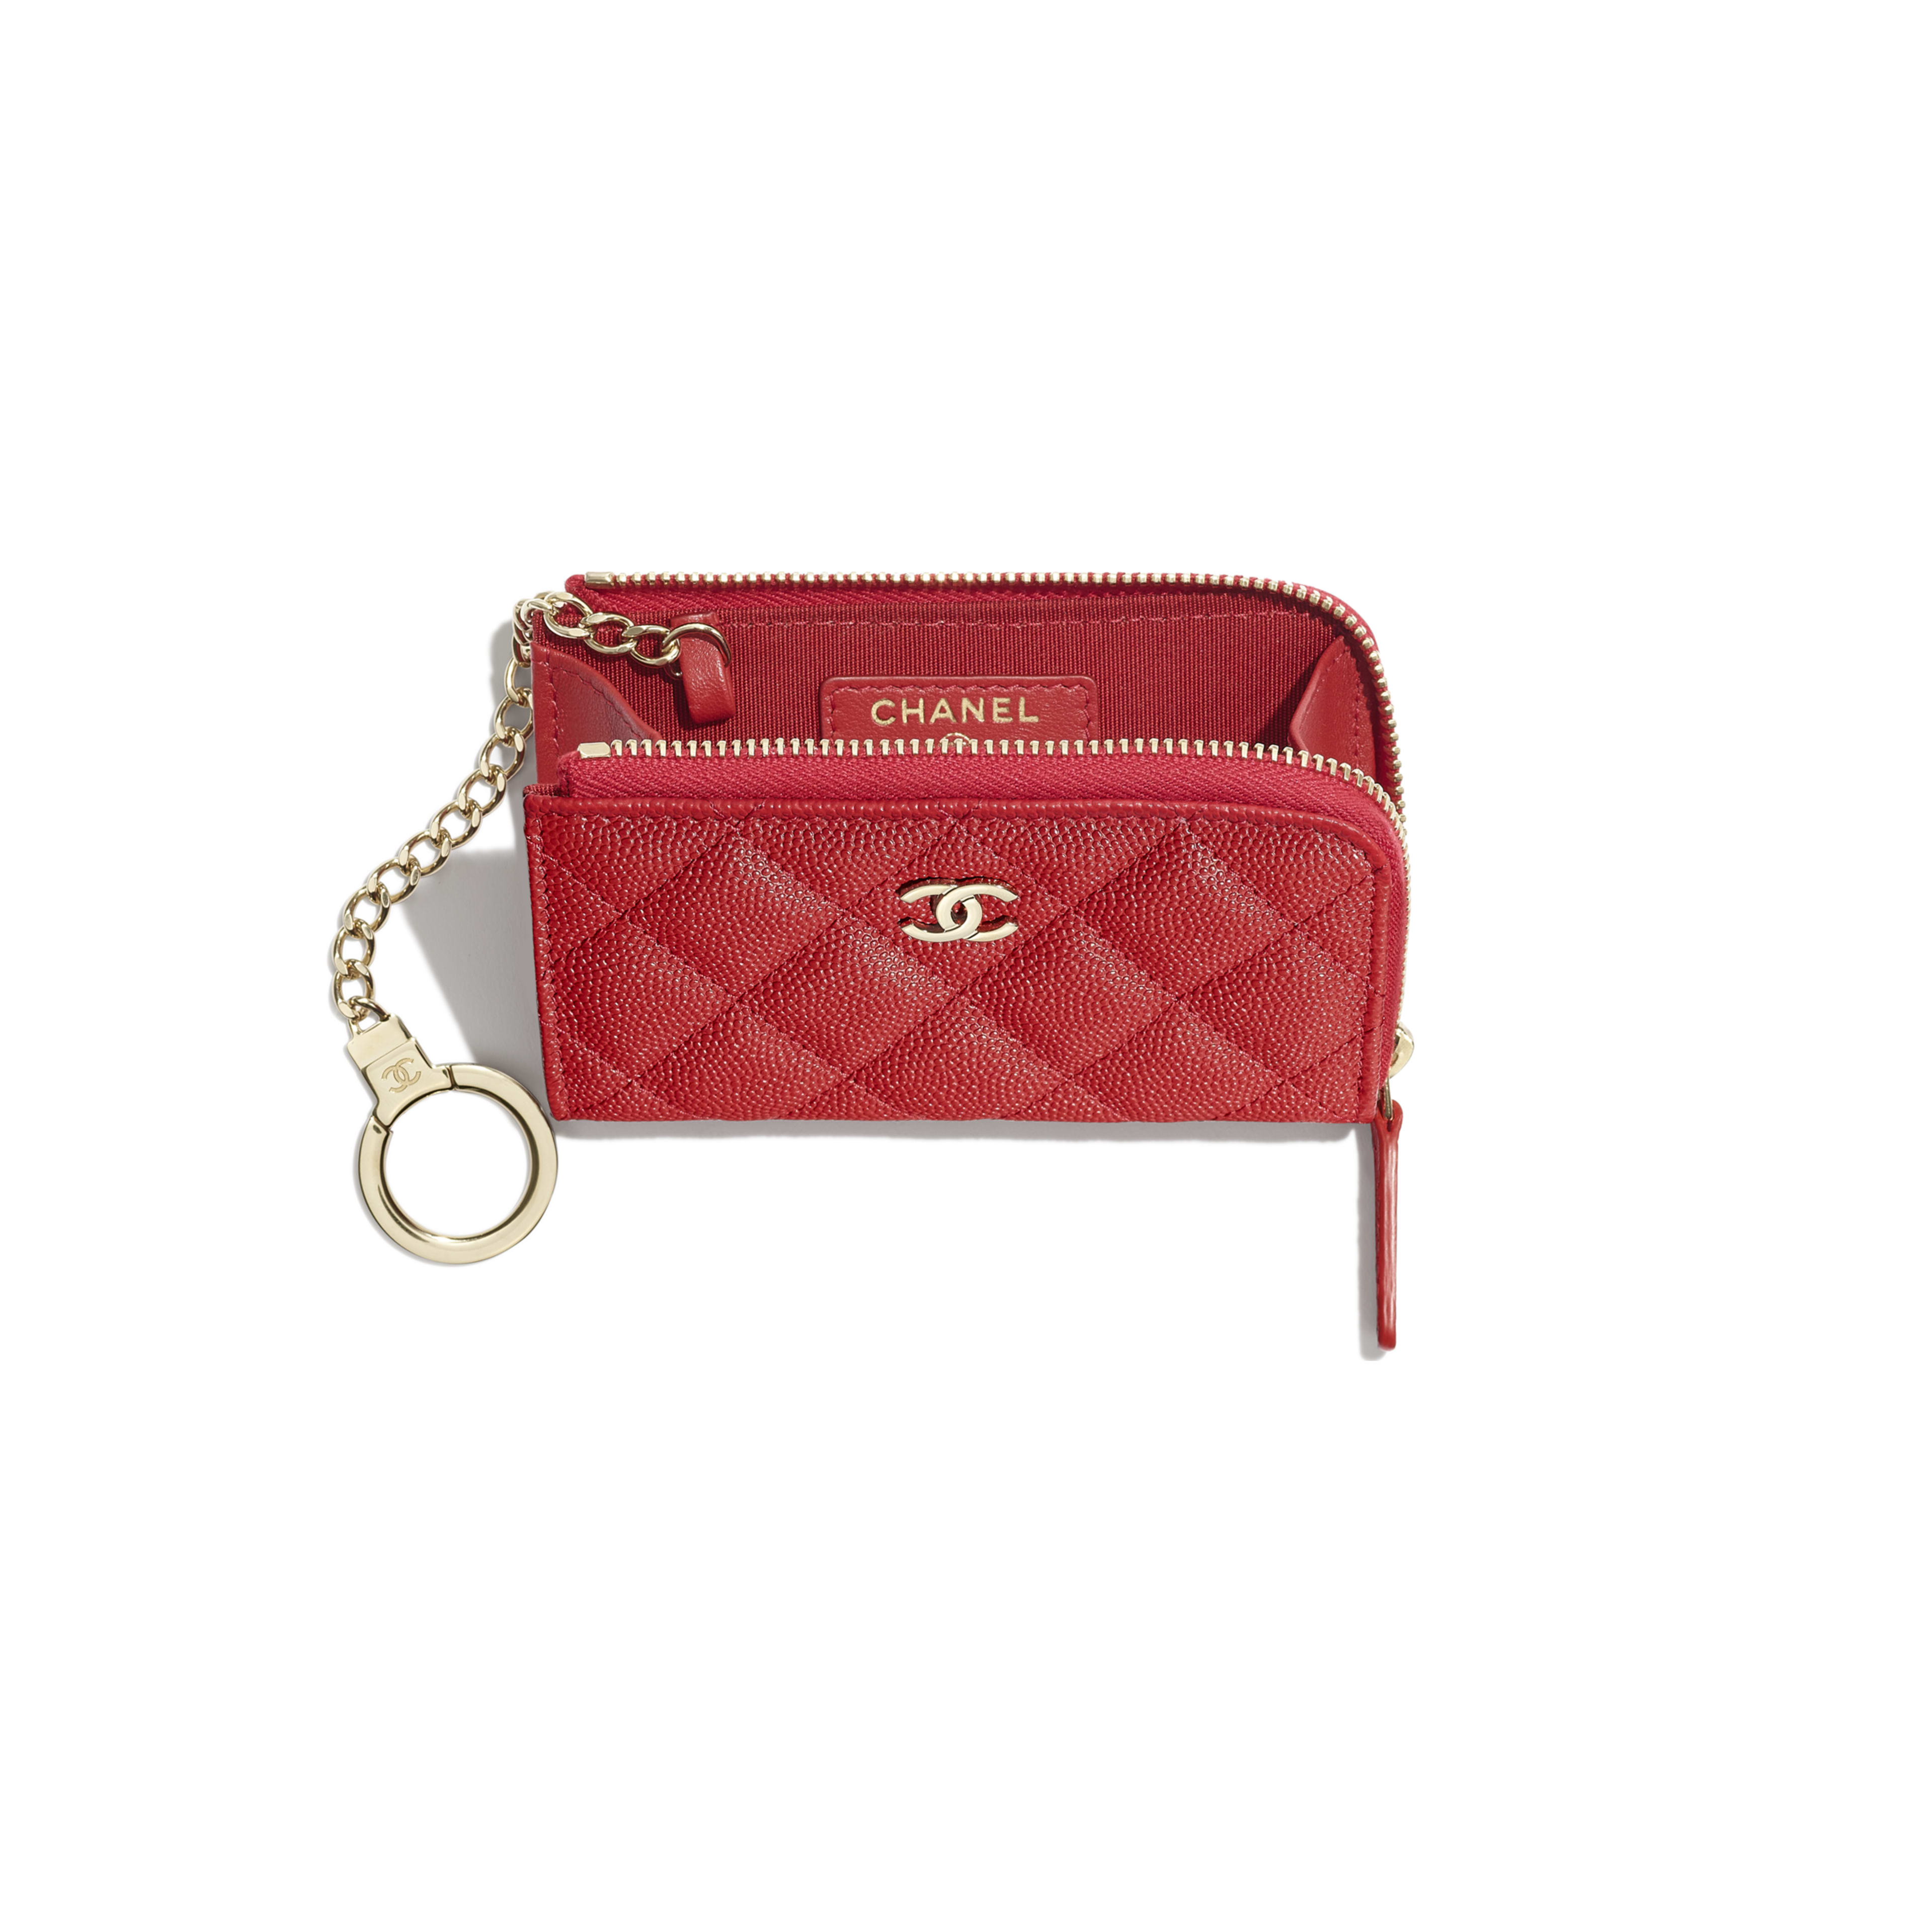 Classic Zipped Key Holder - Red - Grained Calfskin & Gold-Tone Metal - Other view - see full sized version